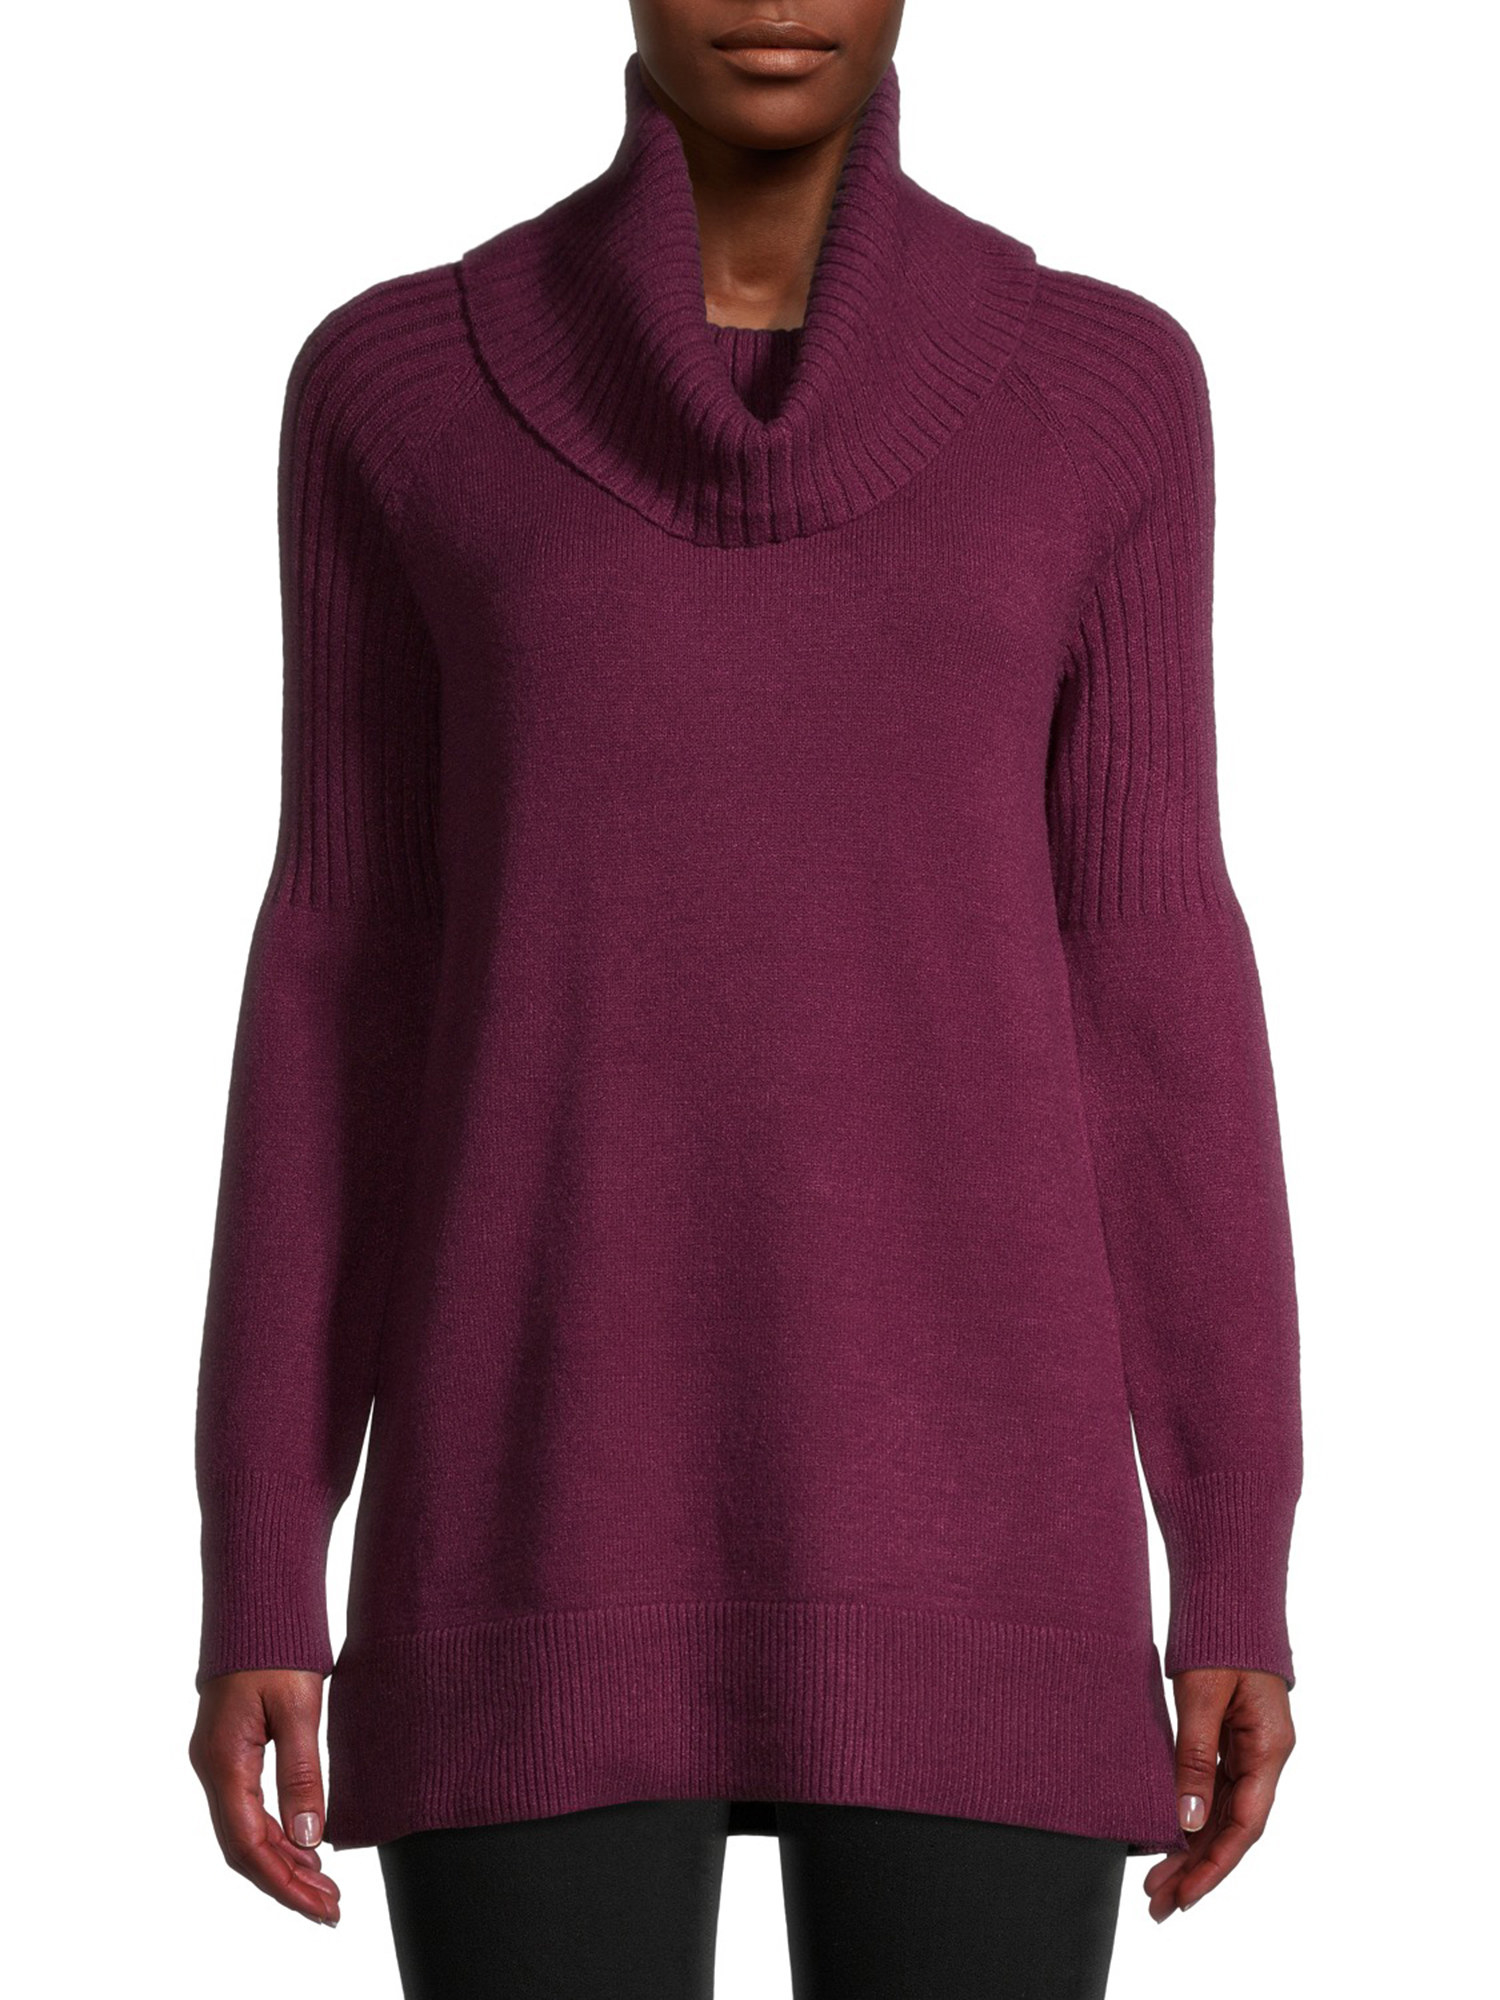 person wearing plum cowl neck sweater over black leggings